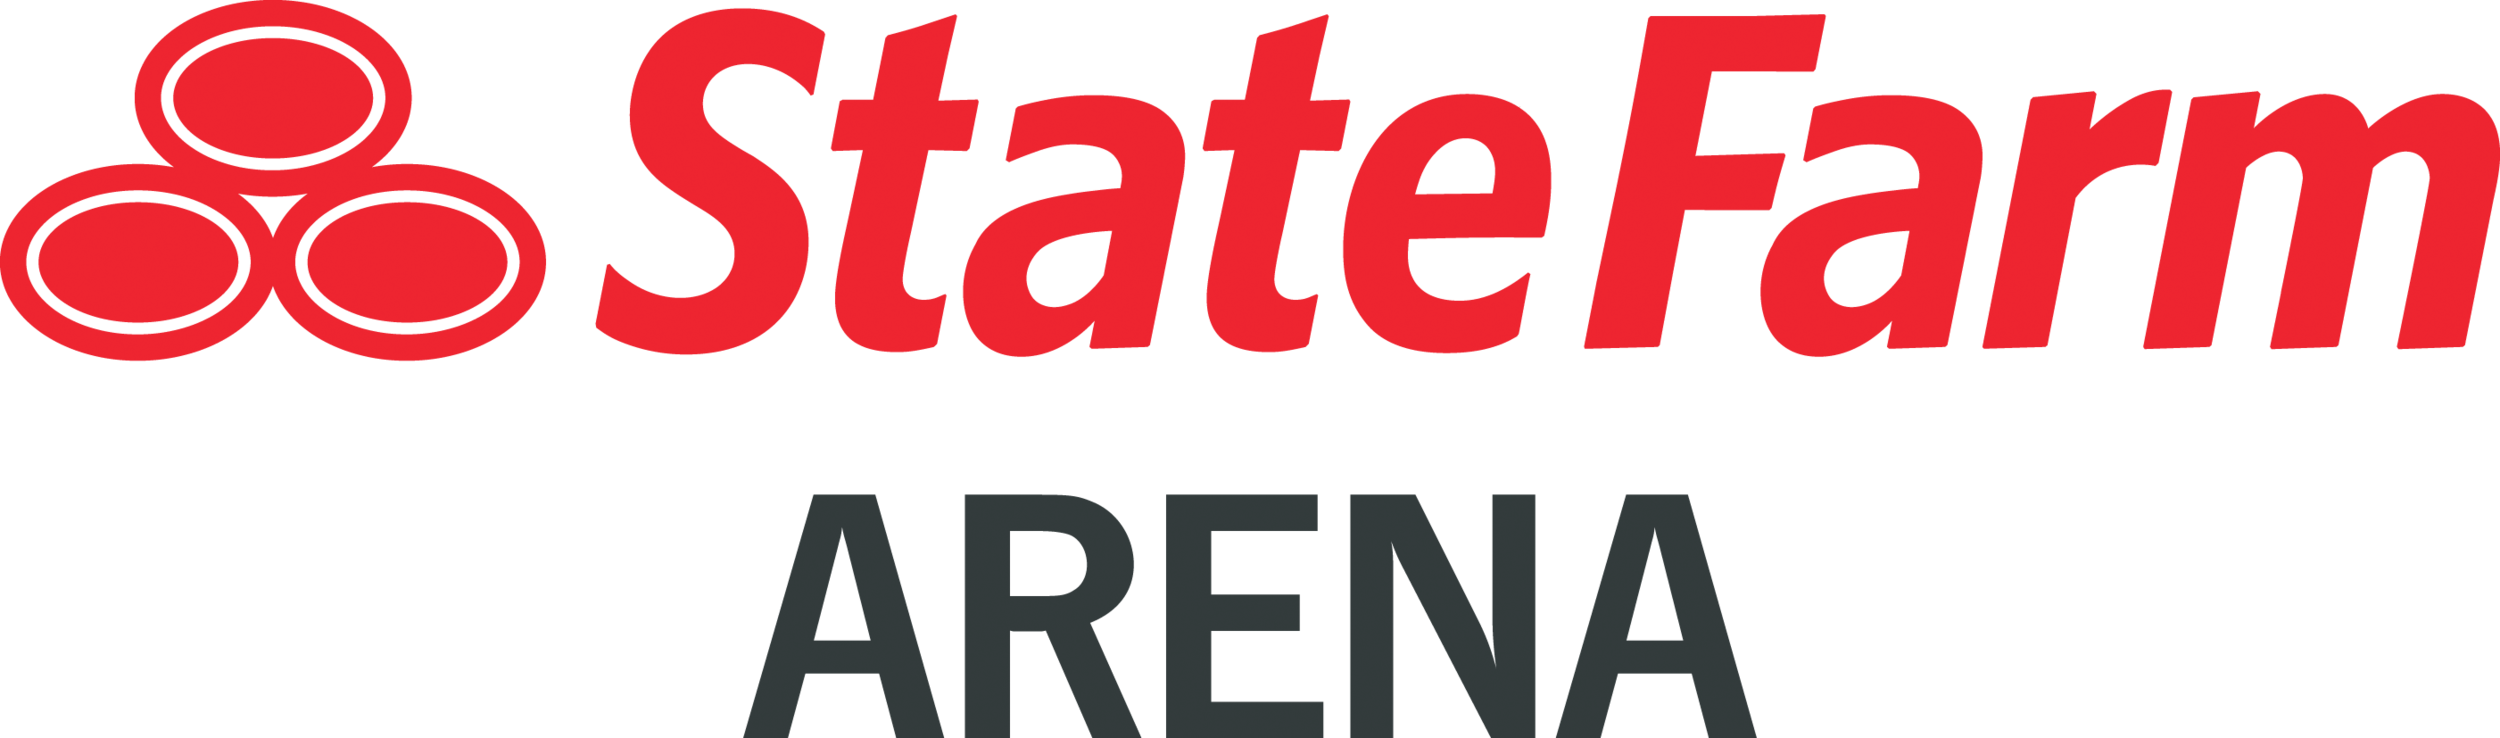 State_Farm_Arena_vert_red_gray_RGB (2).png